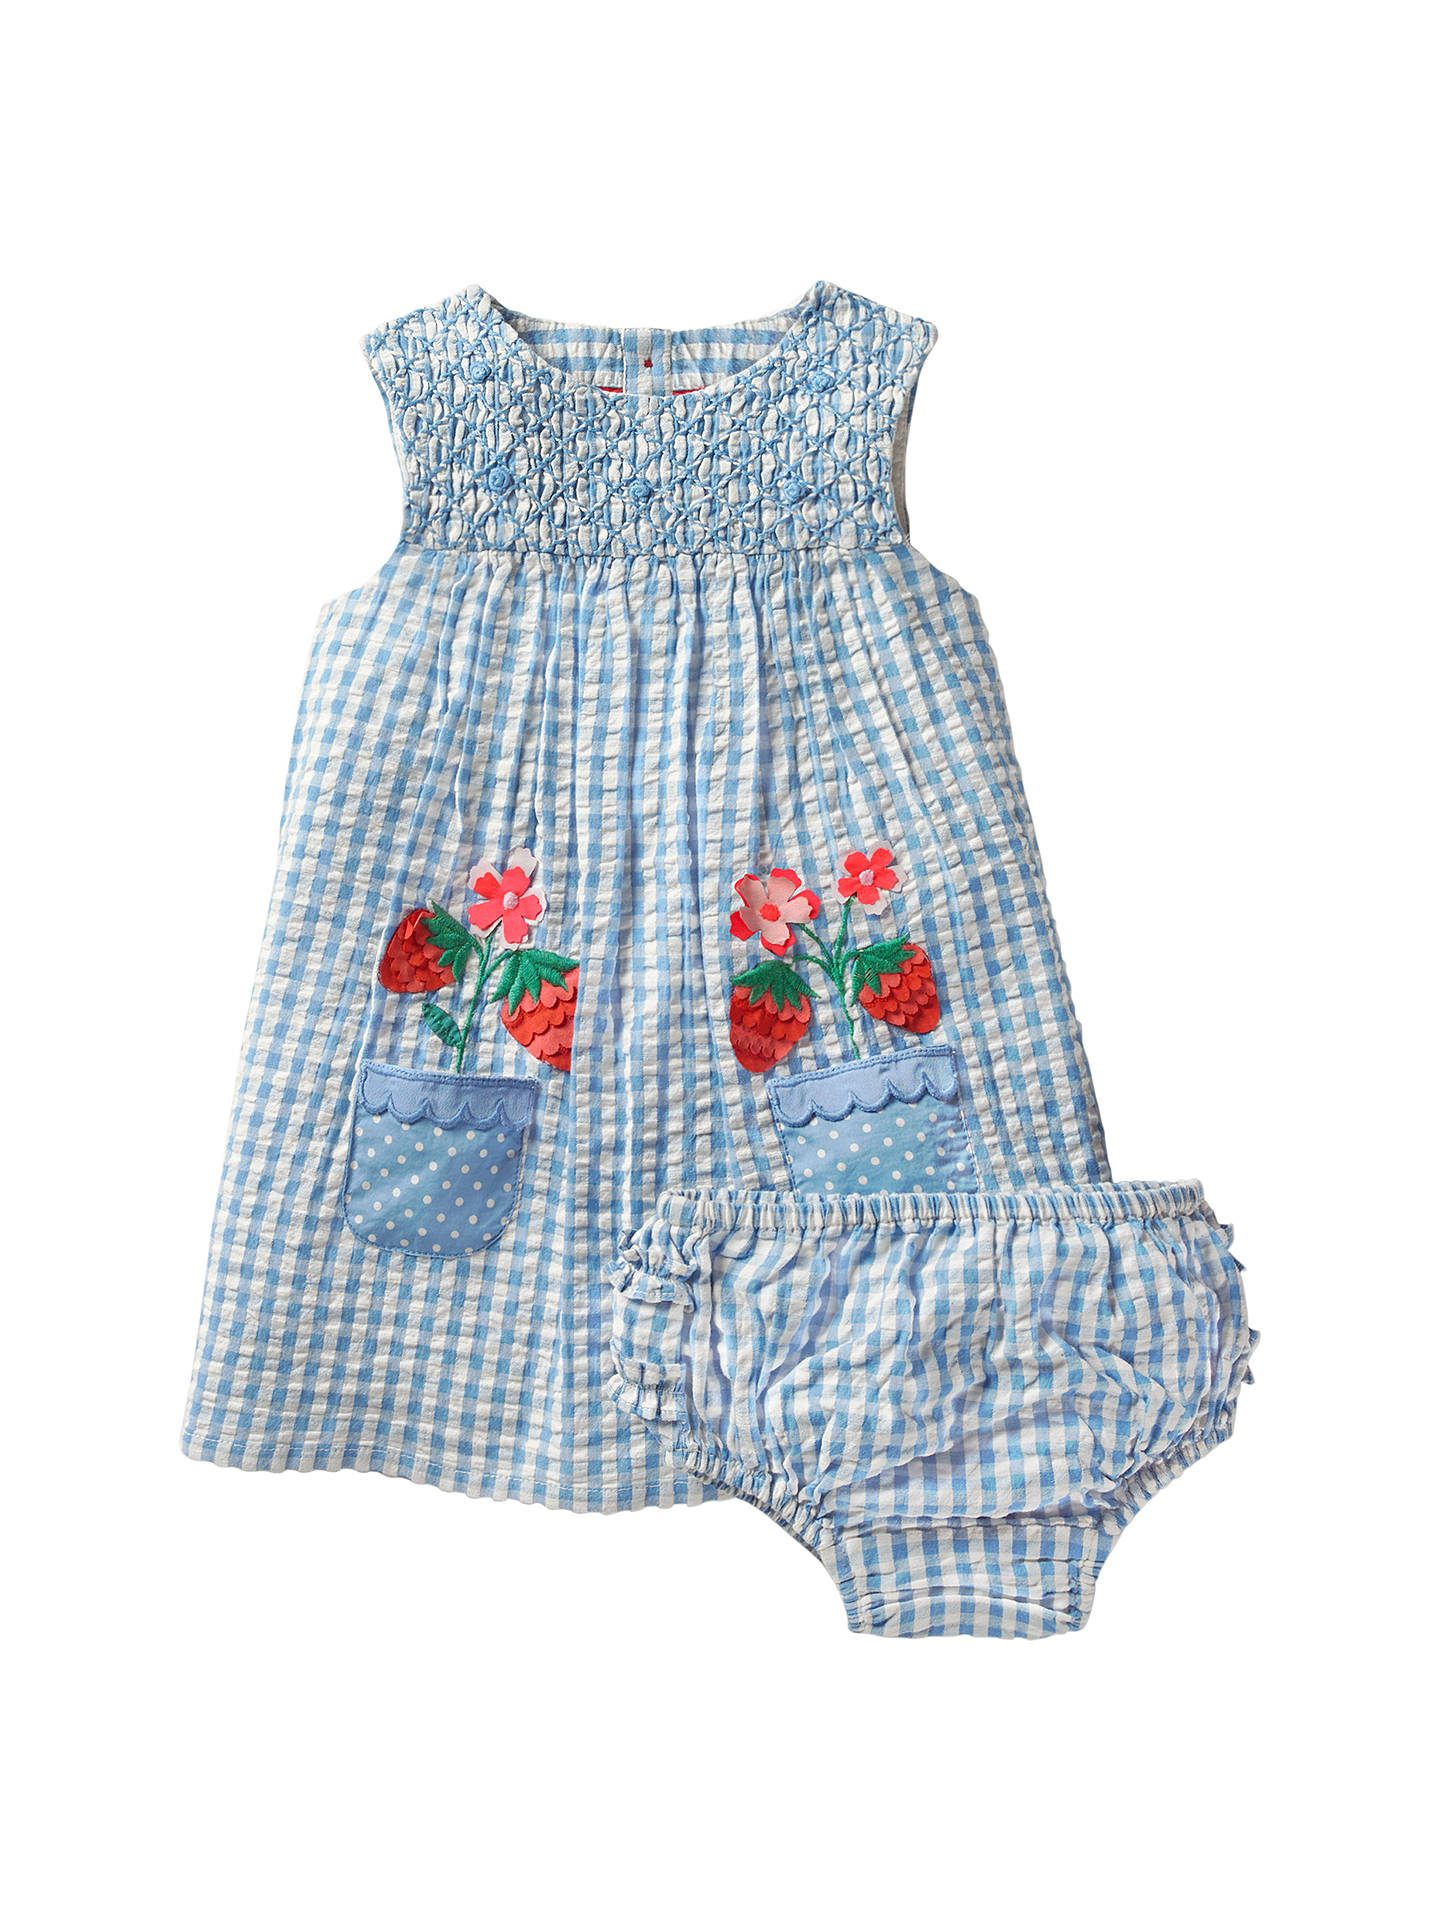 a4b0c5e5e Buy Mini Boden Baby Floral Smock Dress and Knickers Set, Blue, 0-3 ...